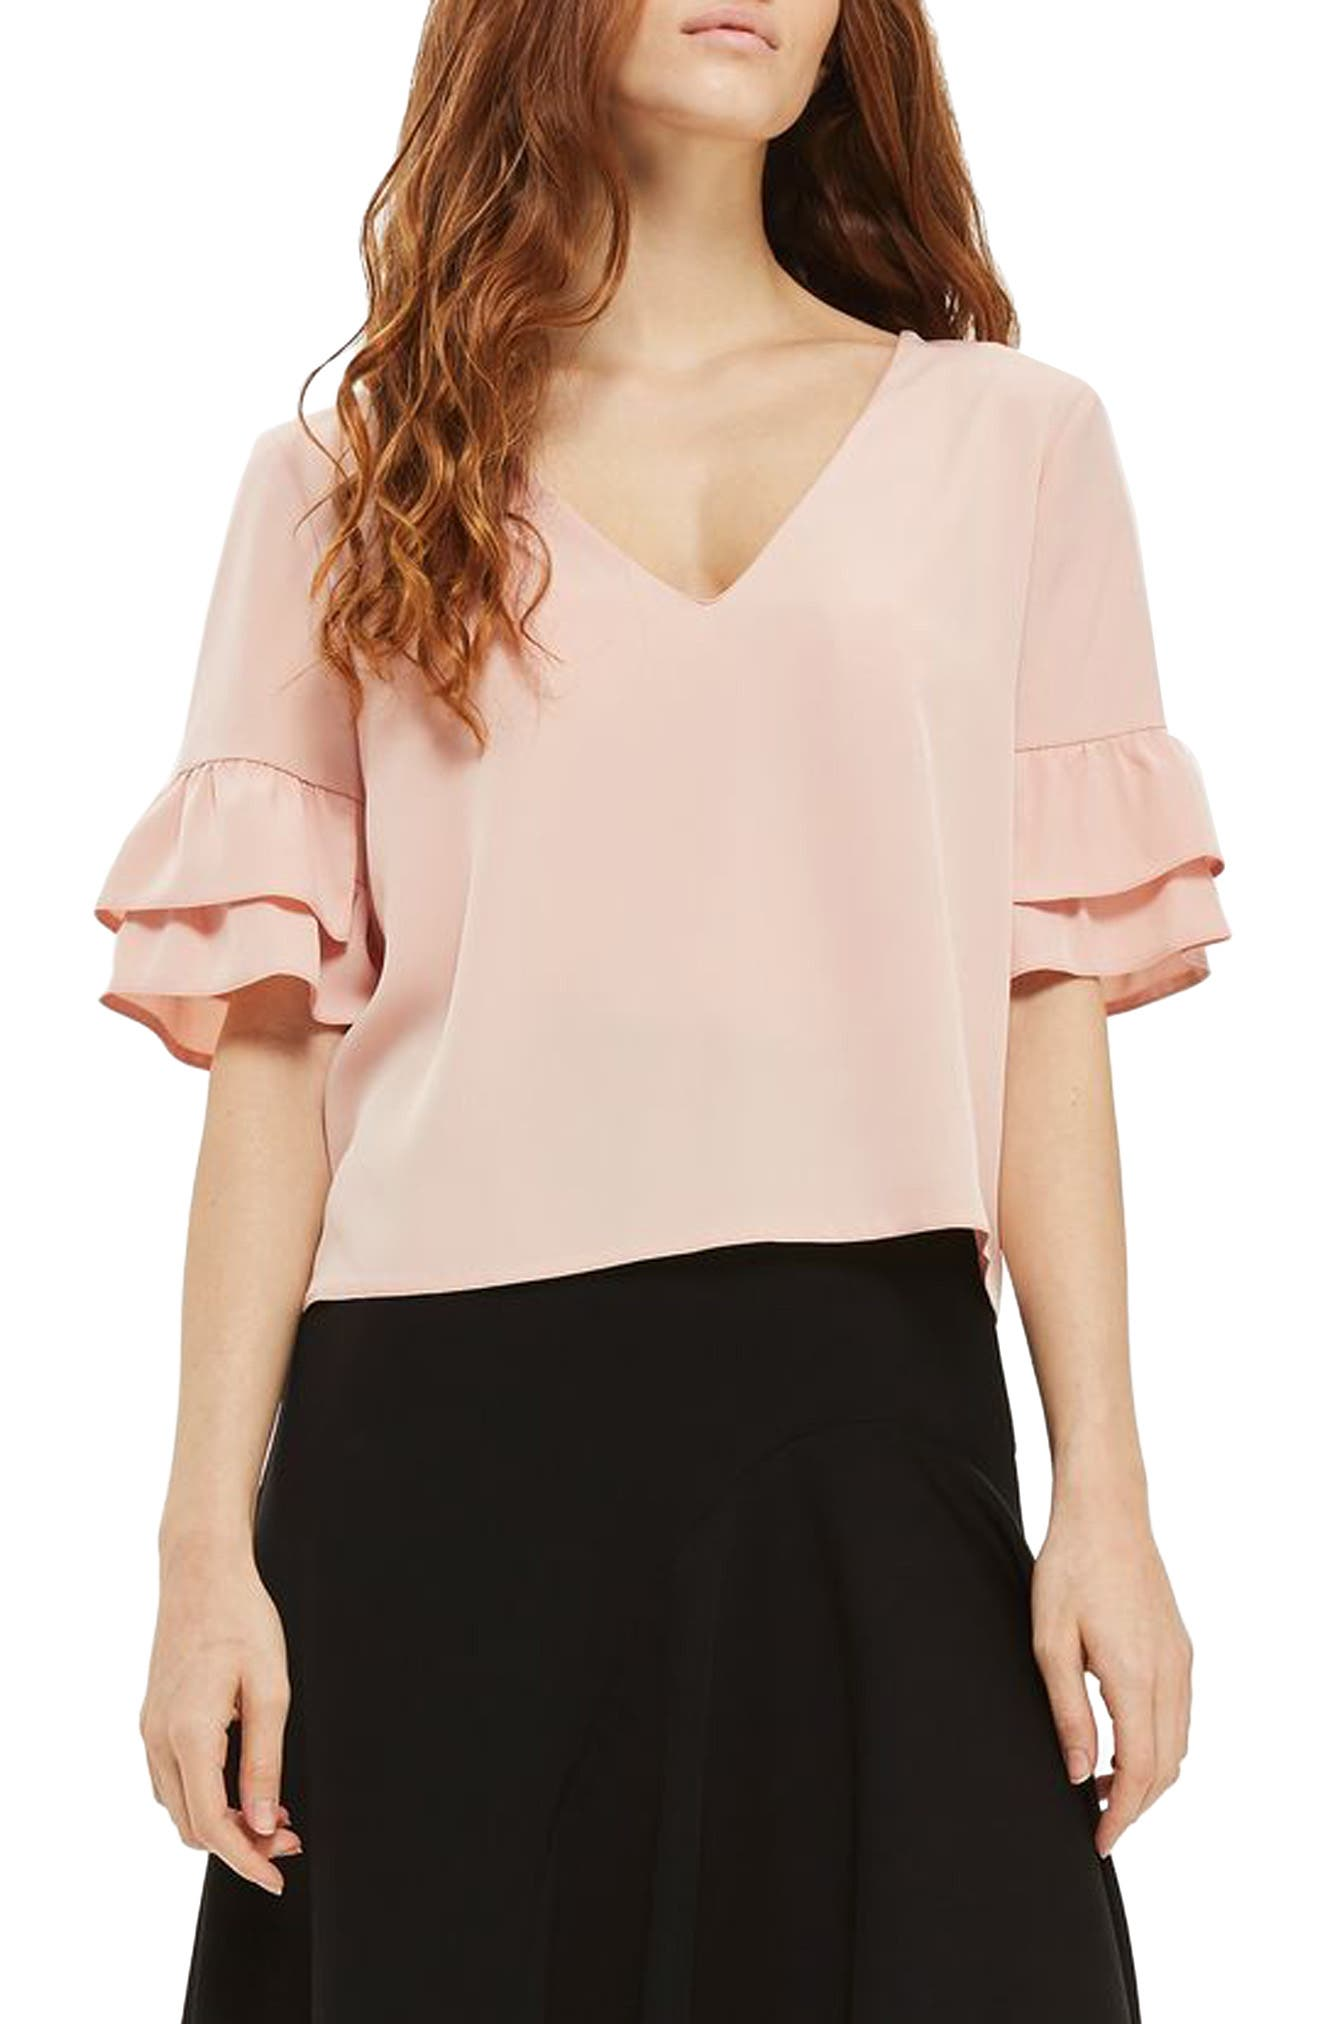 Topshop Tie Back Ruffle Sleeve Top